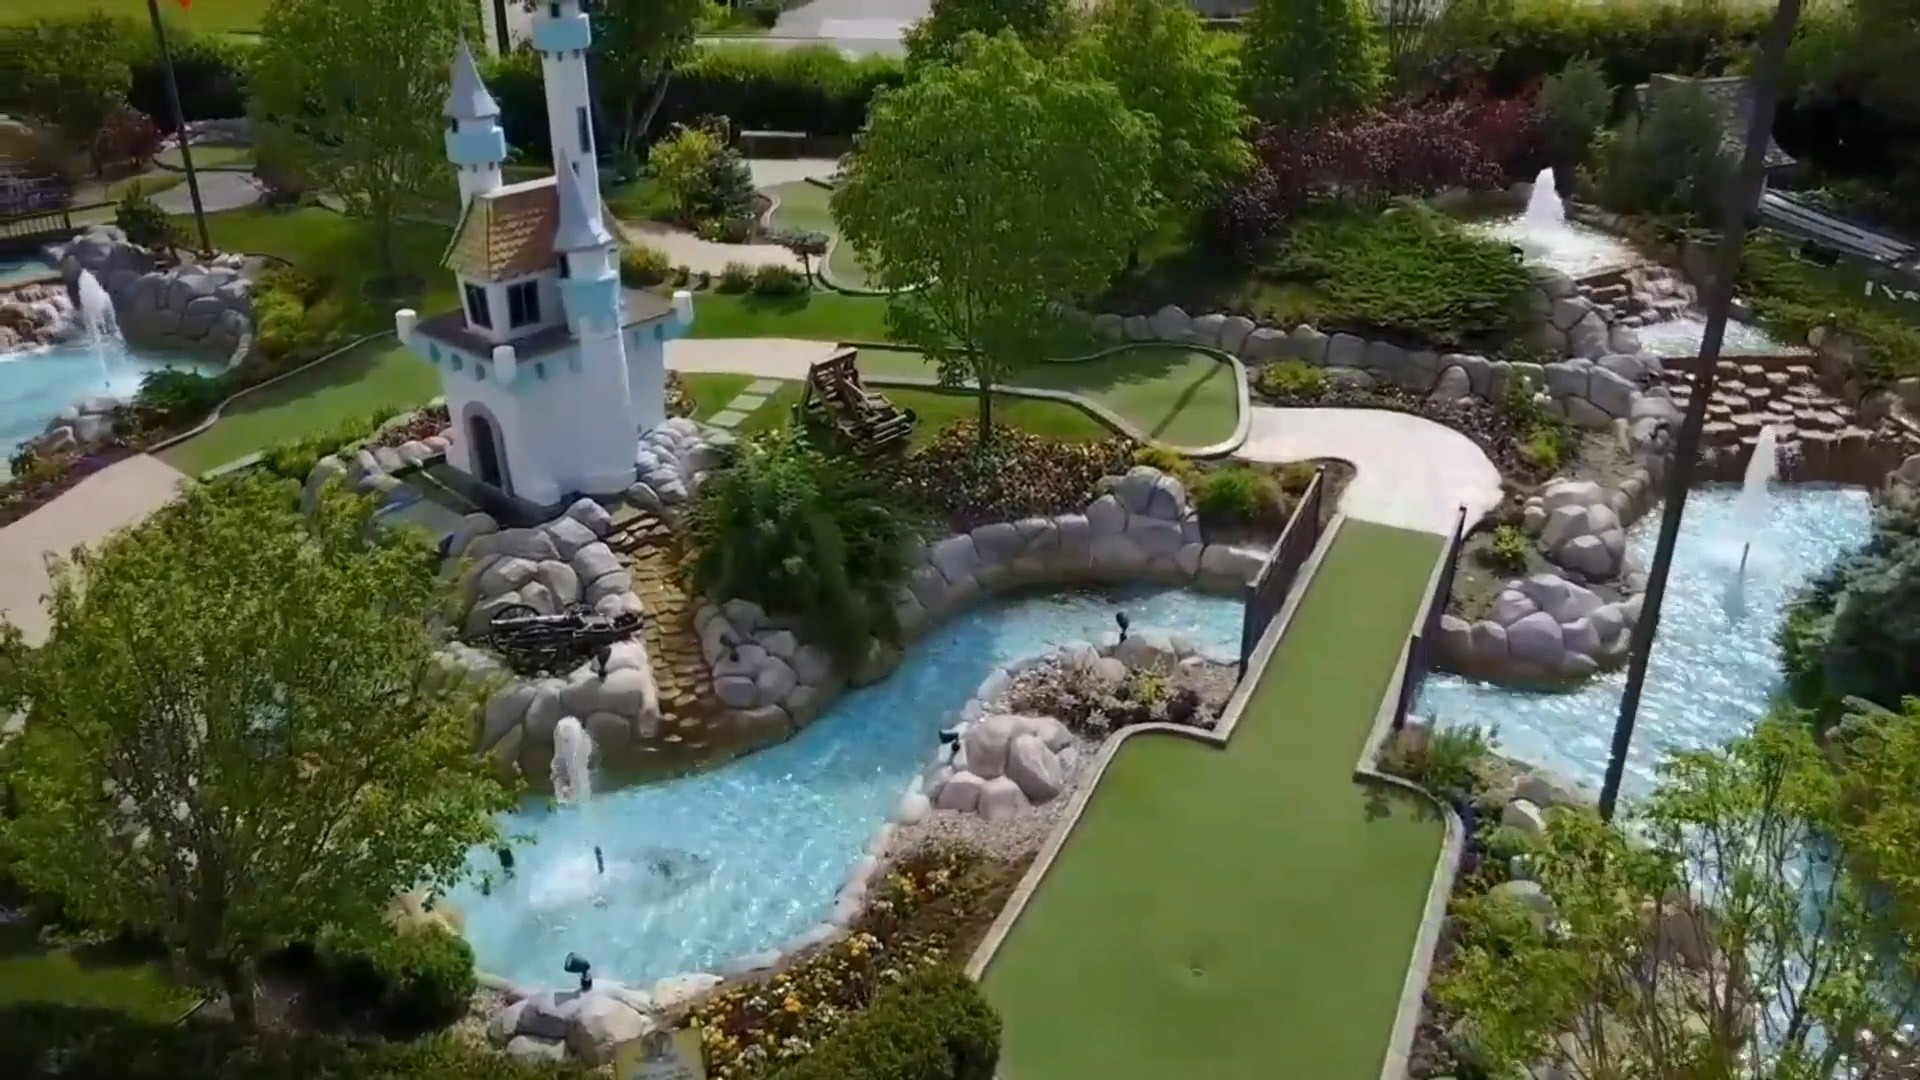 Saskatoon Nice Outdoor Mini Golf Course